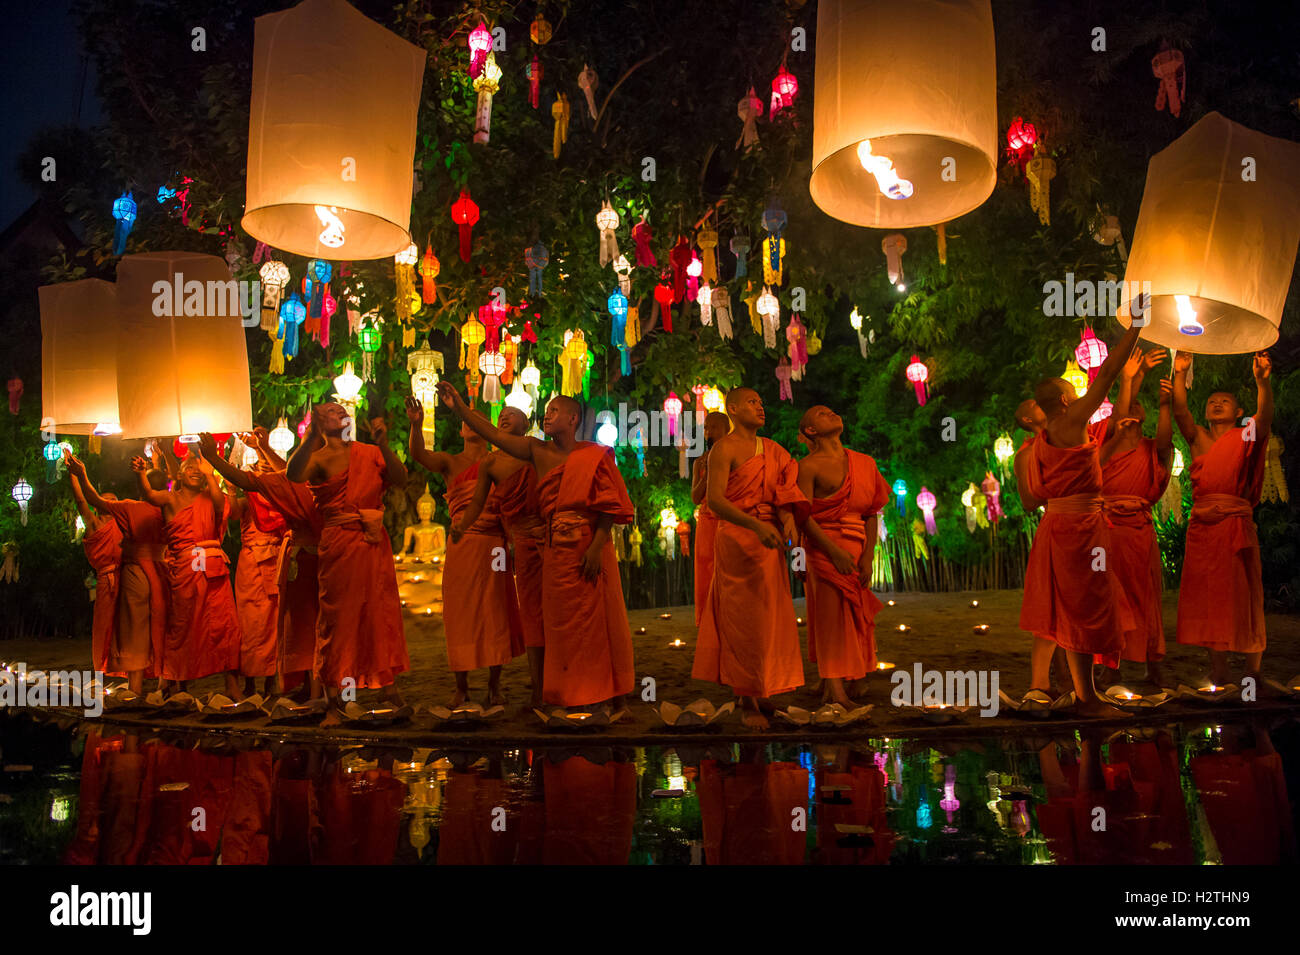 CHIANG MAI, THAILAND - NOVEMBER 07, 2014: Groups of young Buddhist monks launch sky lanterns at the Yee Peng festival Stock Photo